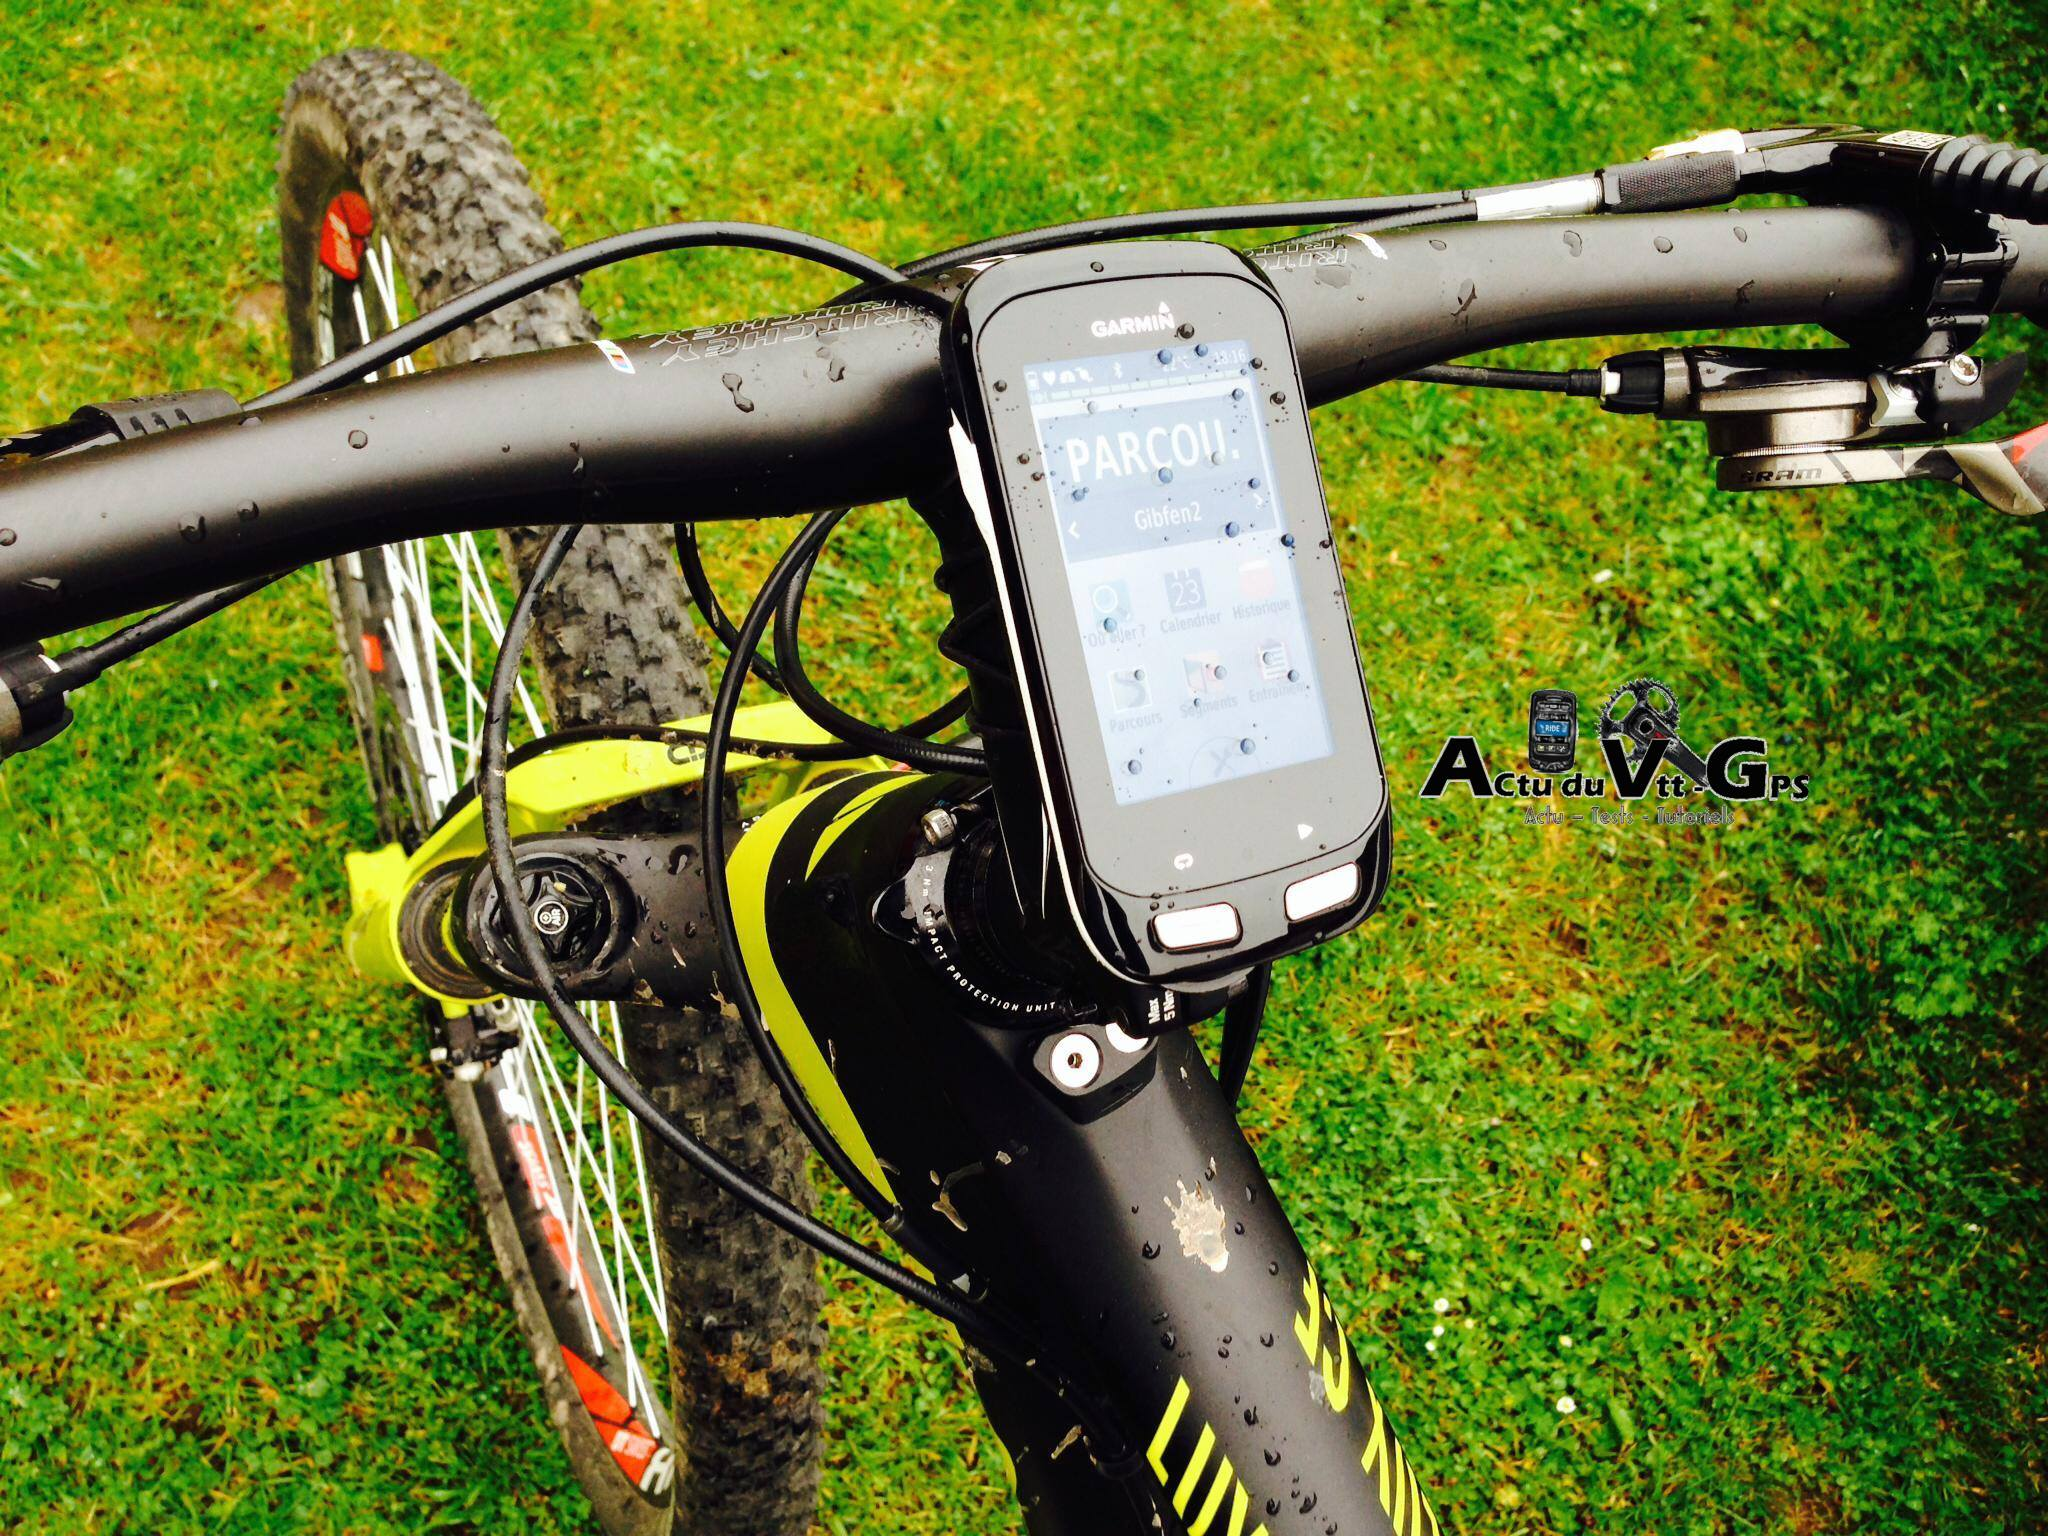 GARMIN EDGE 1000 AU LABO…